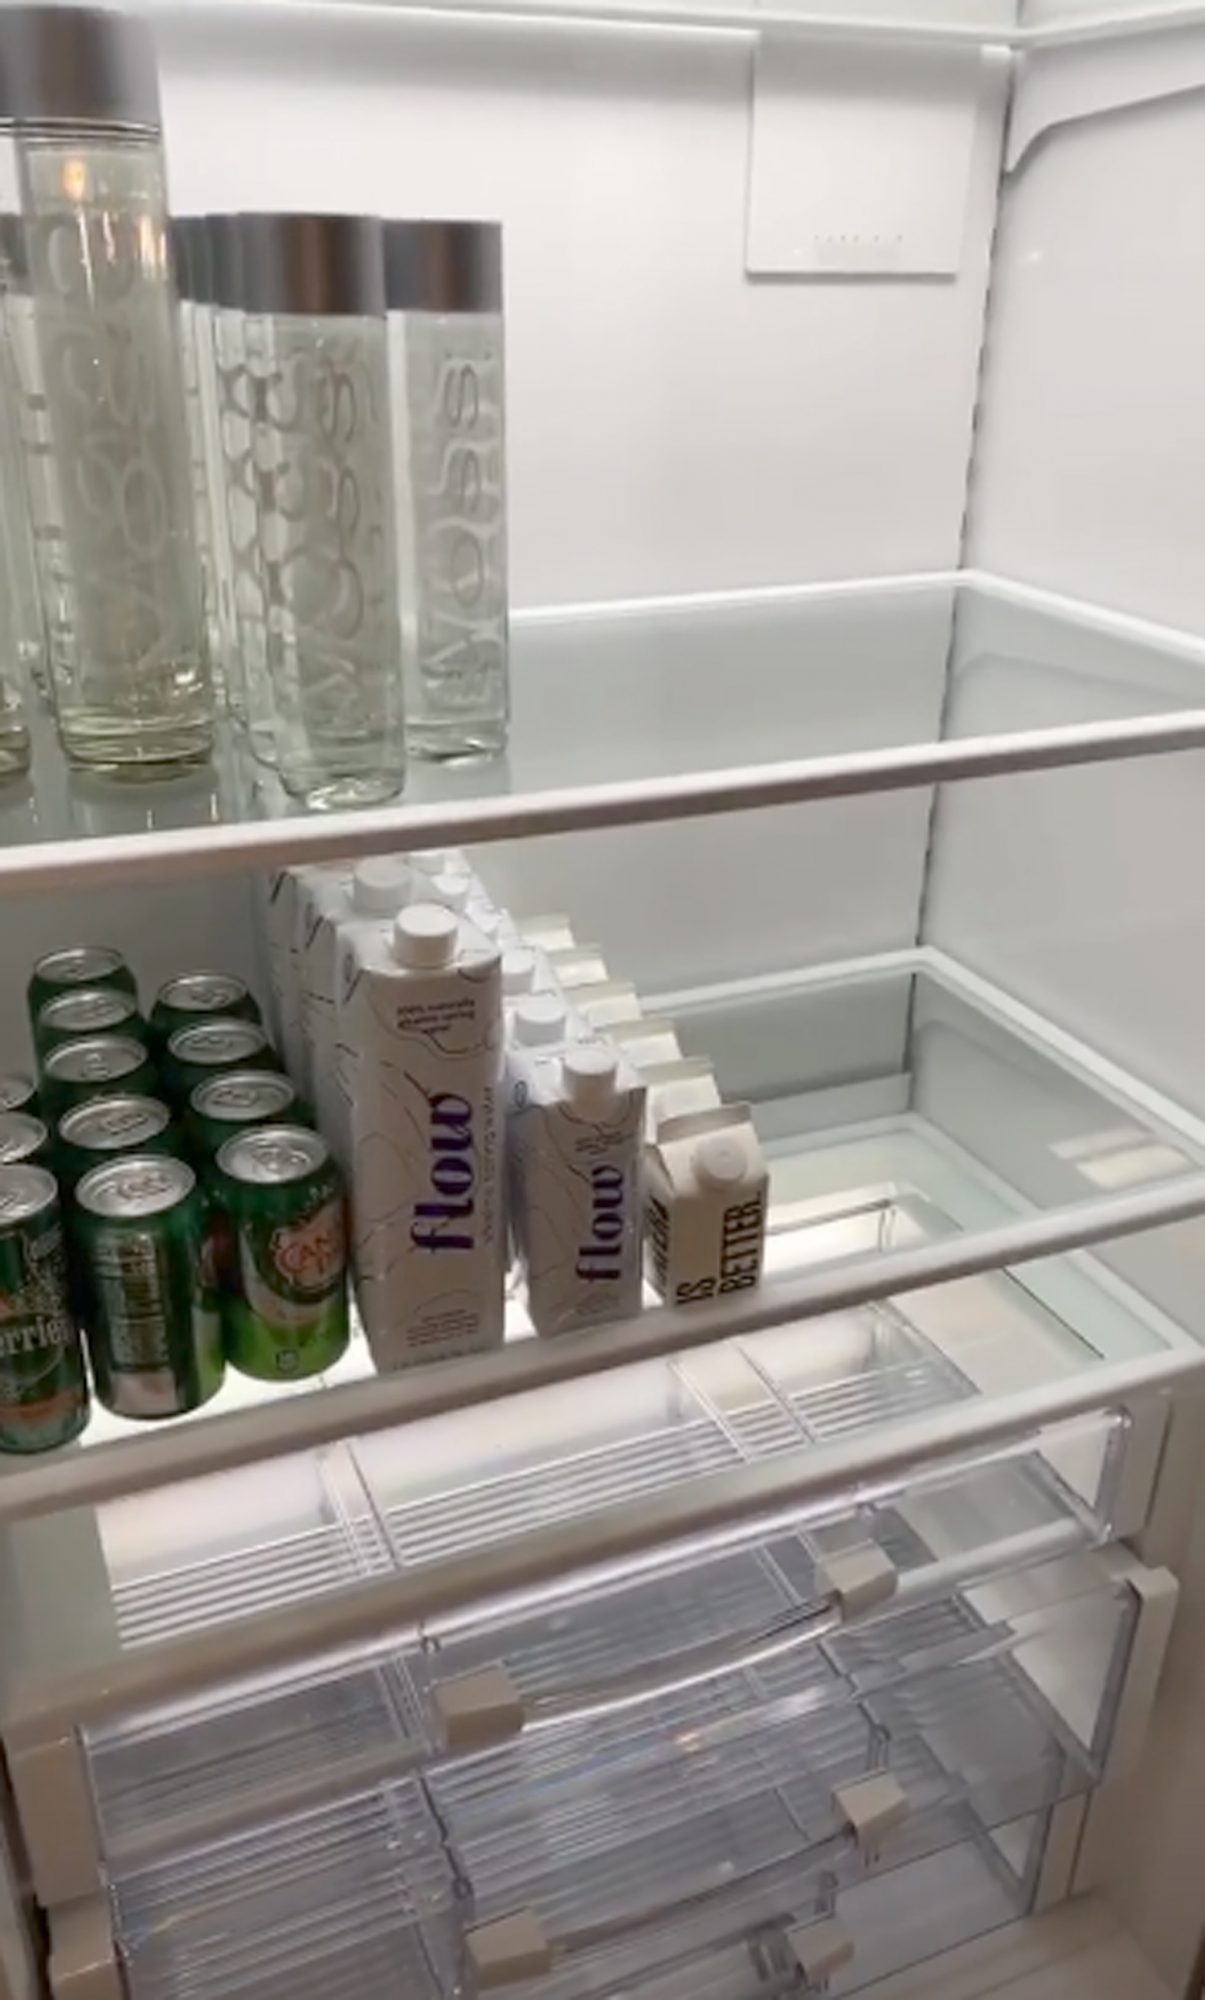 Kim Kardashian gives us a tour of her fridge